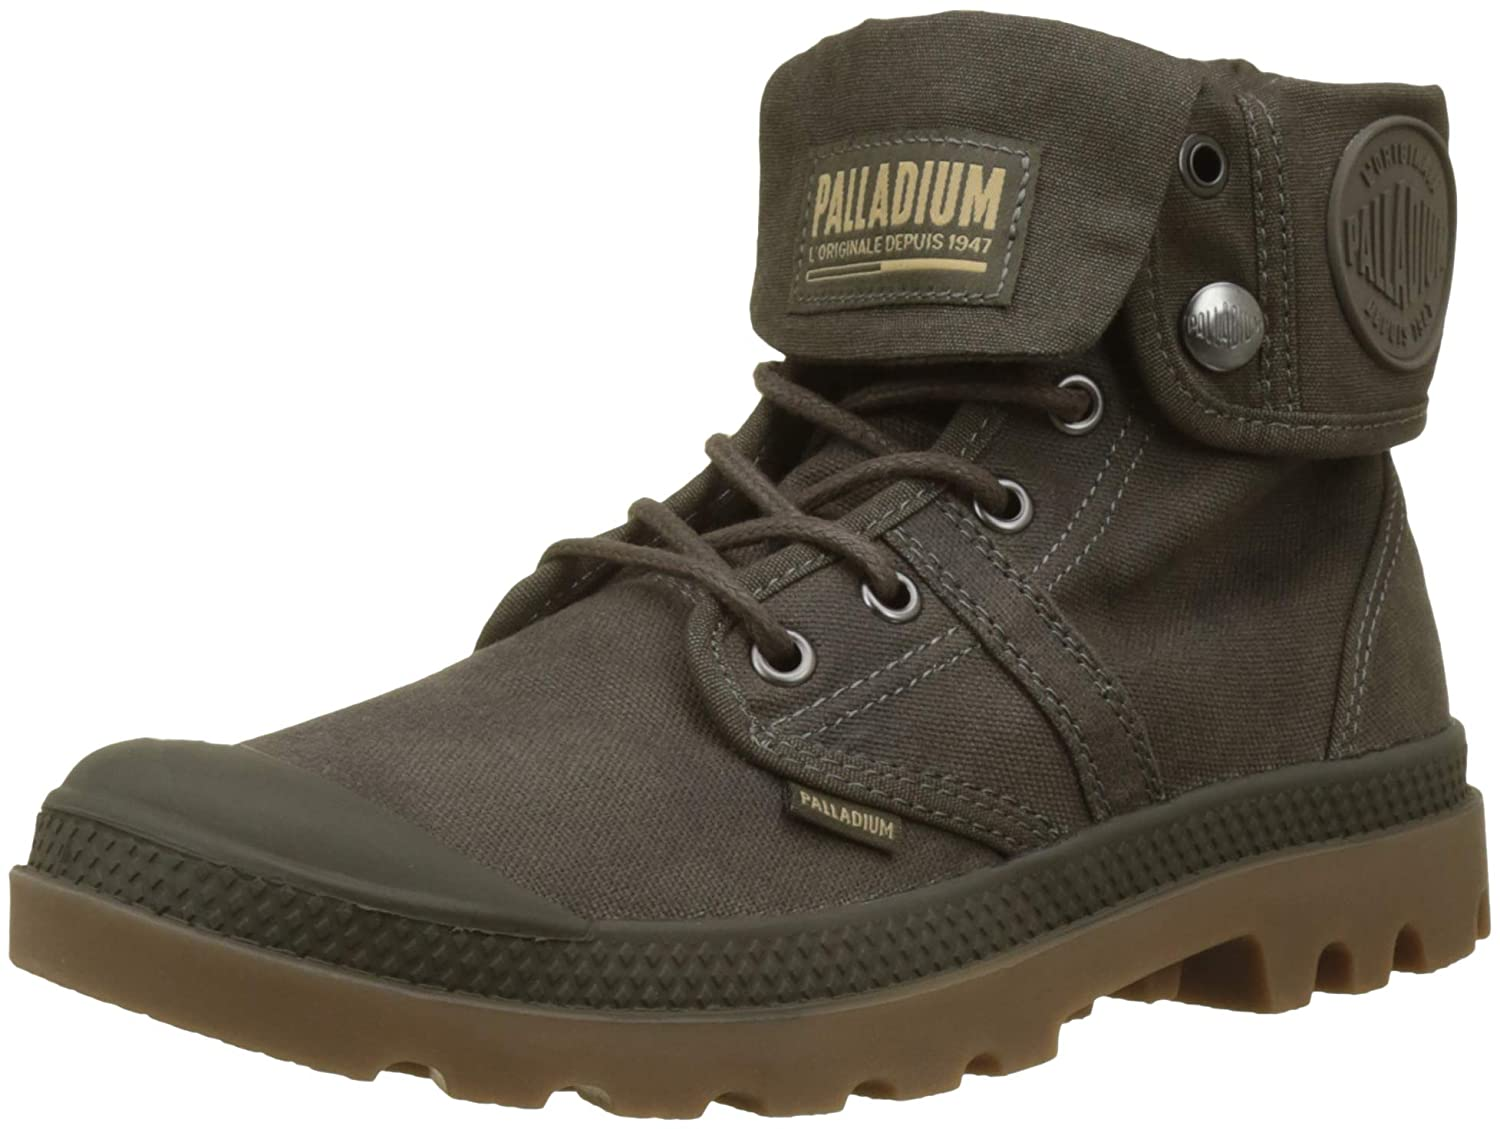 Palladium Pallabrouse BGY Wax, (Arnum Bottes Major et Bottines Souples 19995 Mixte Adulte Vert (Arnum Major Brown/Mid Gum G39) aad7ae4 - reprogrammed.space